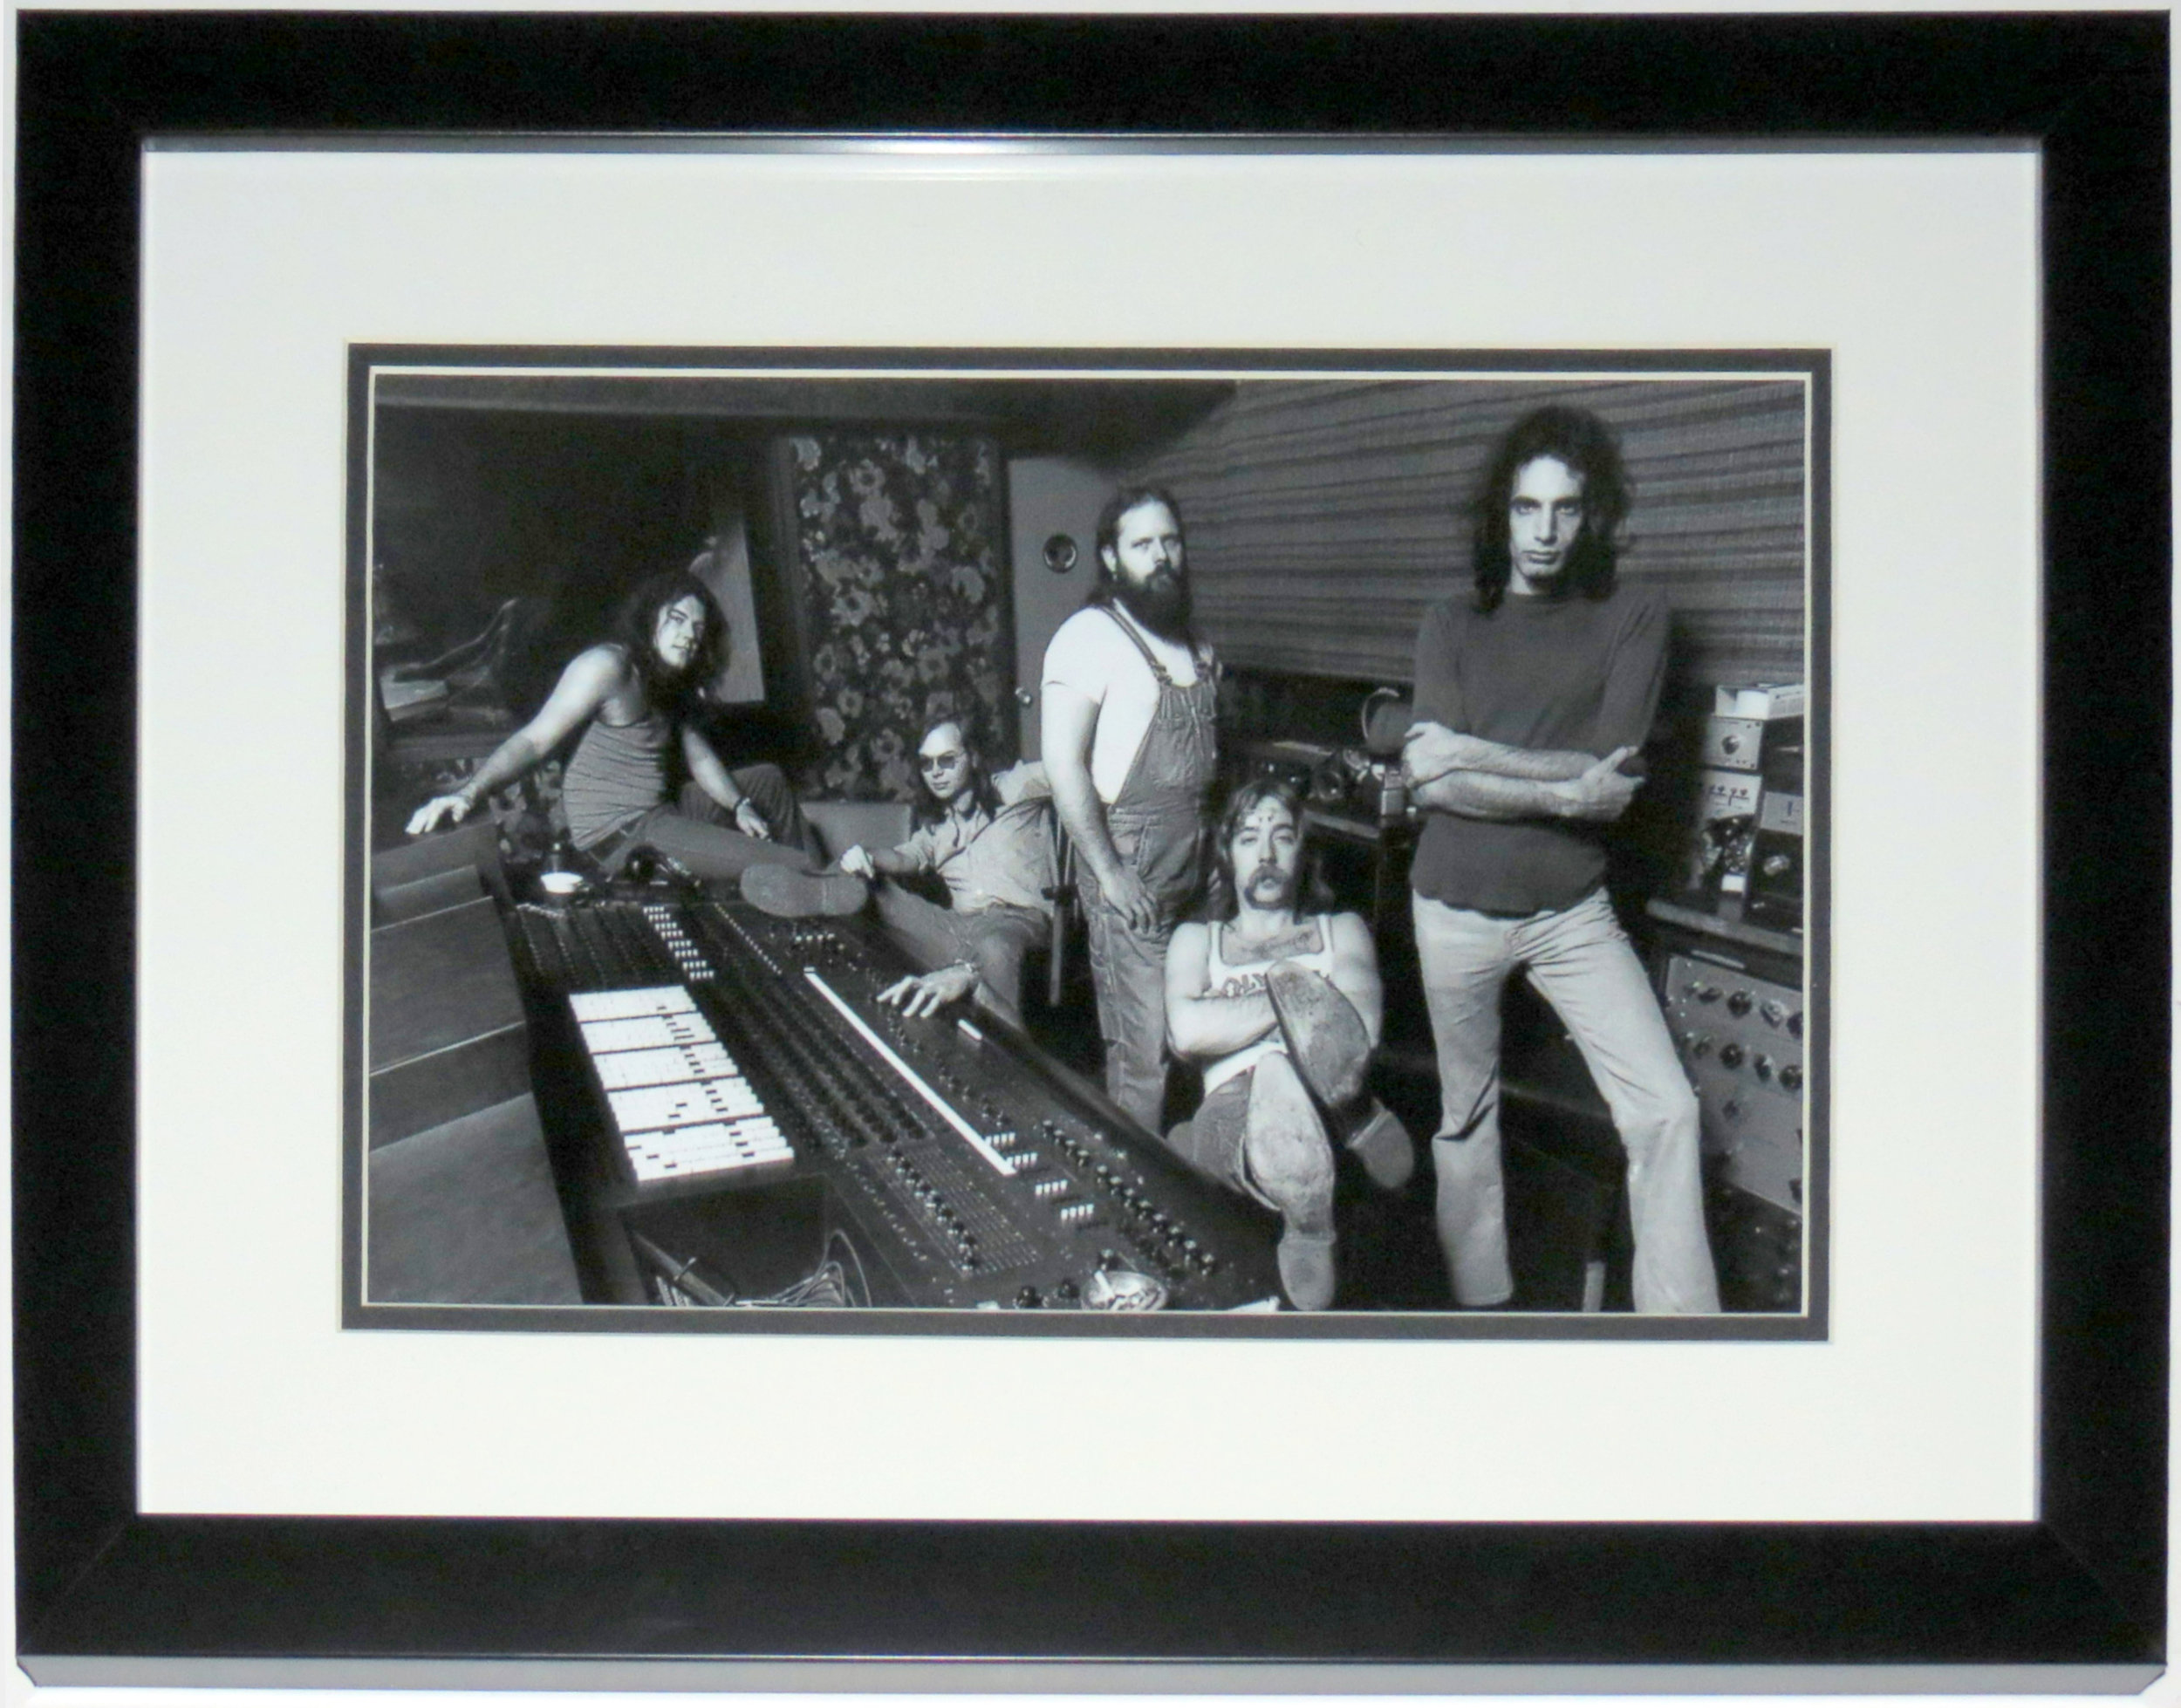 Steely Dan 11x14 Band Photo - Professionally Framed